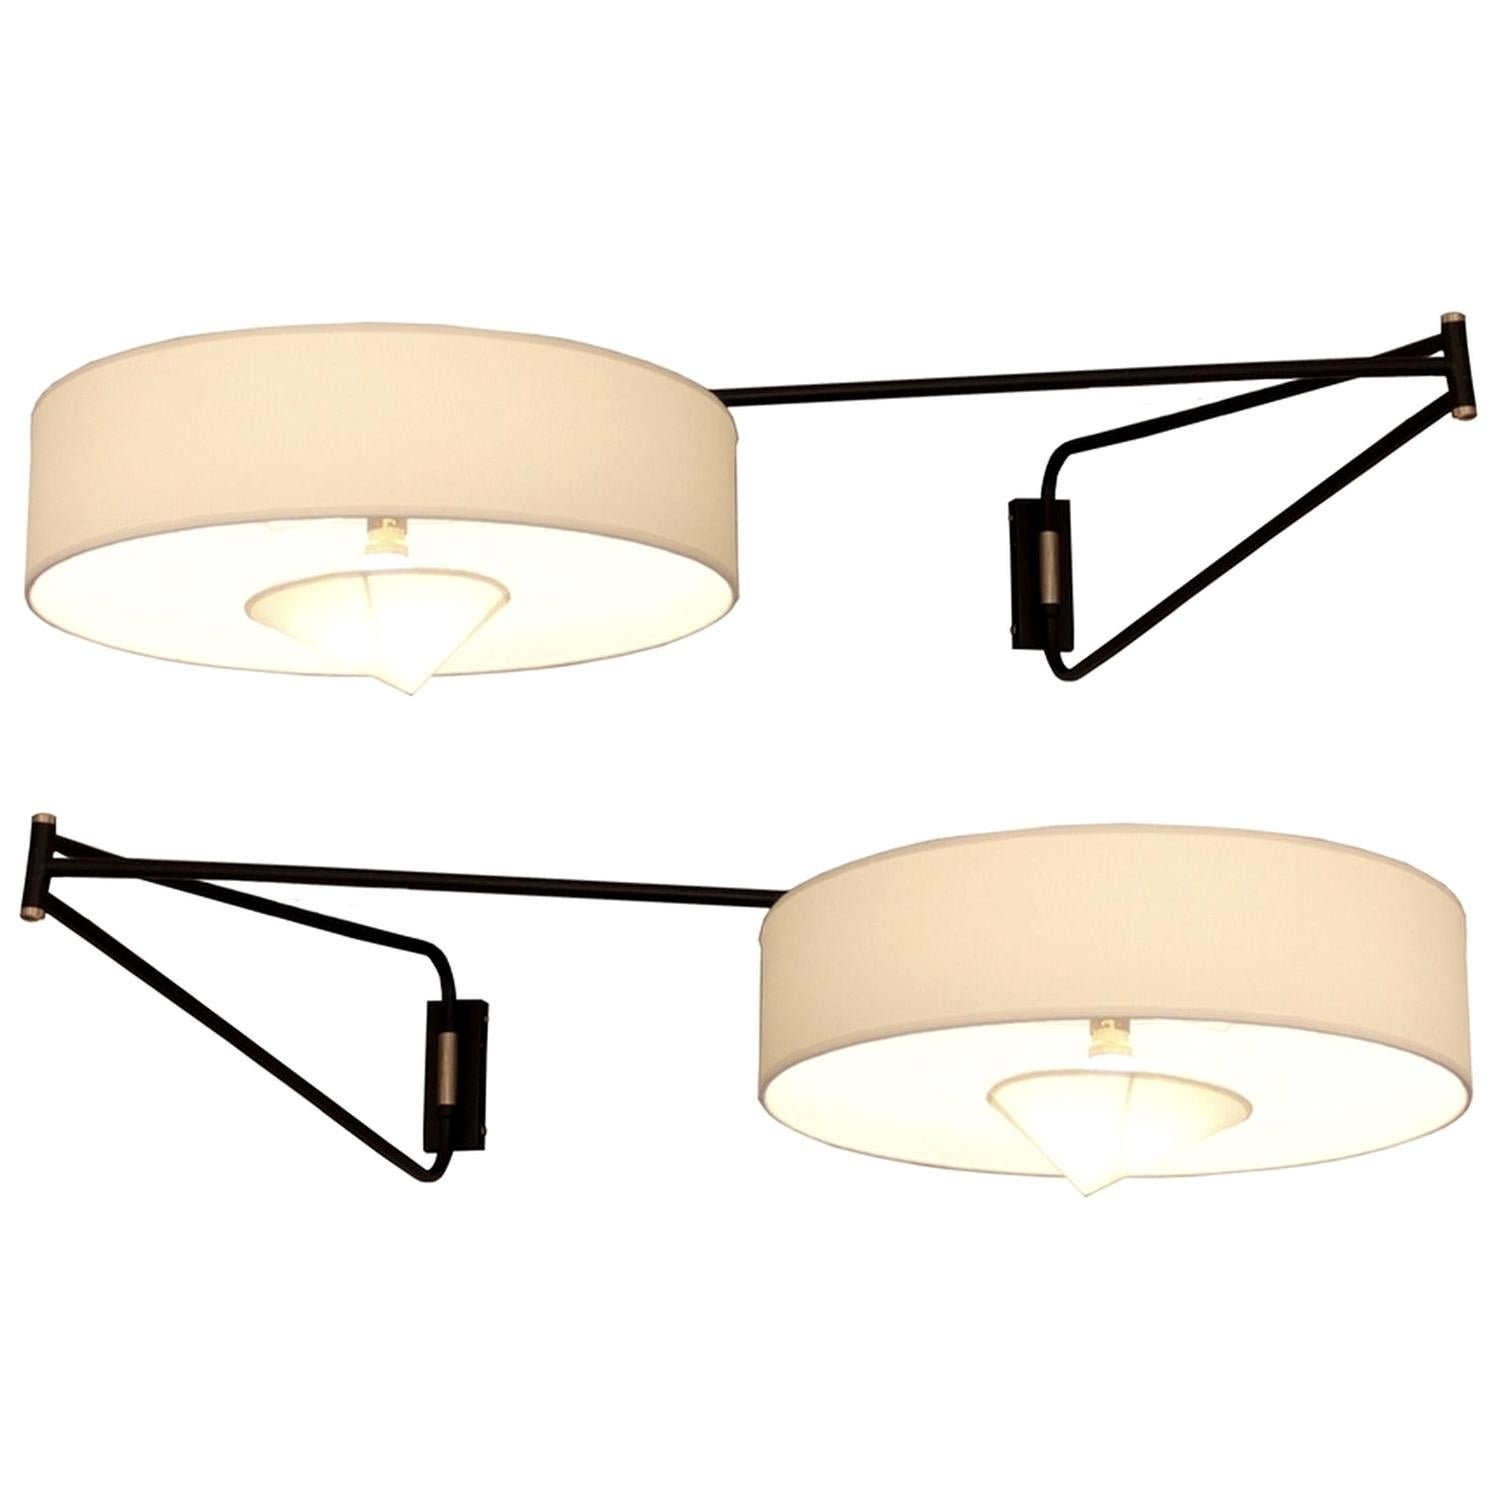 Pair of Large Adjustable and Foldable Wall Lights by Arlus, France, circa 1950